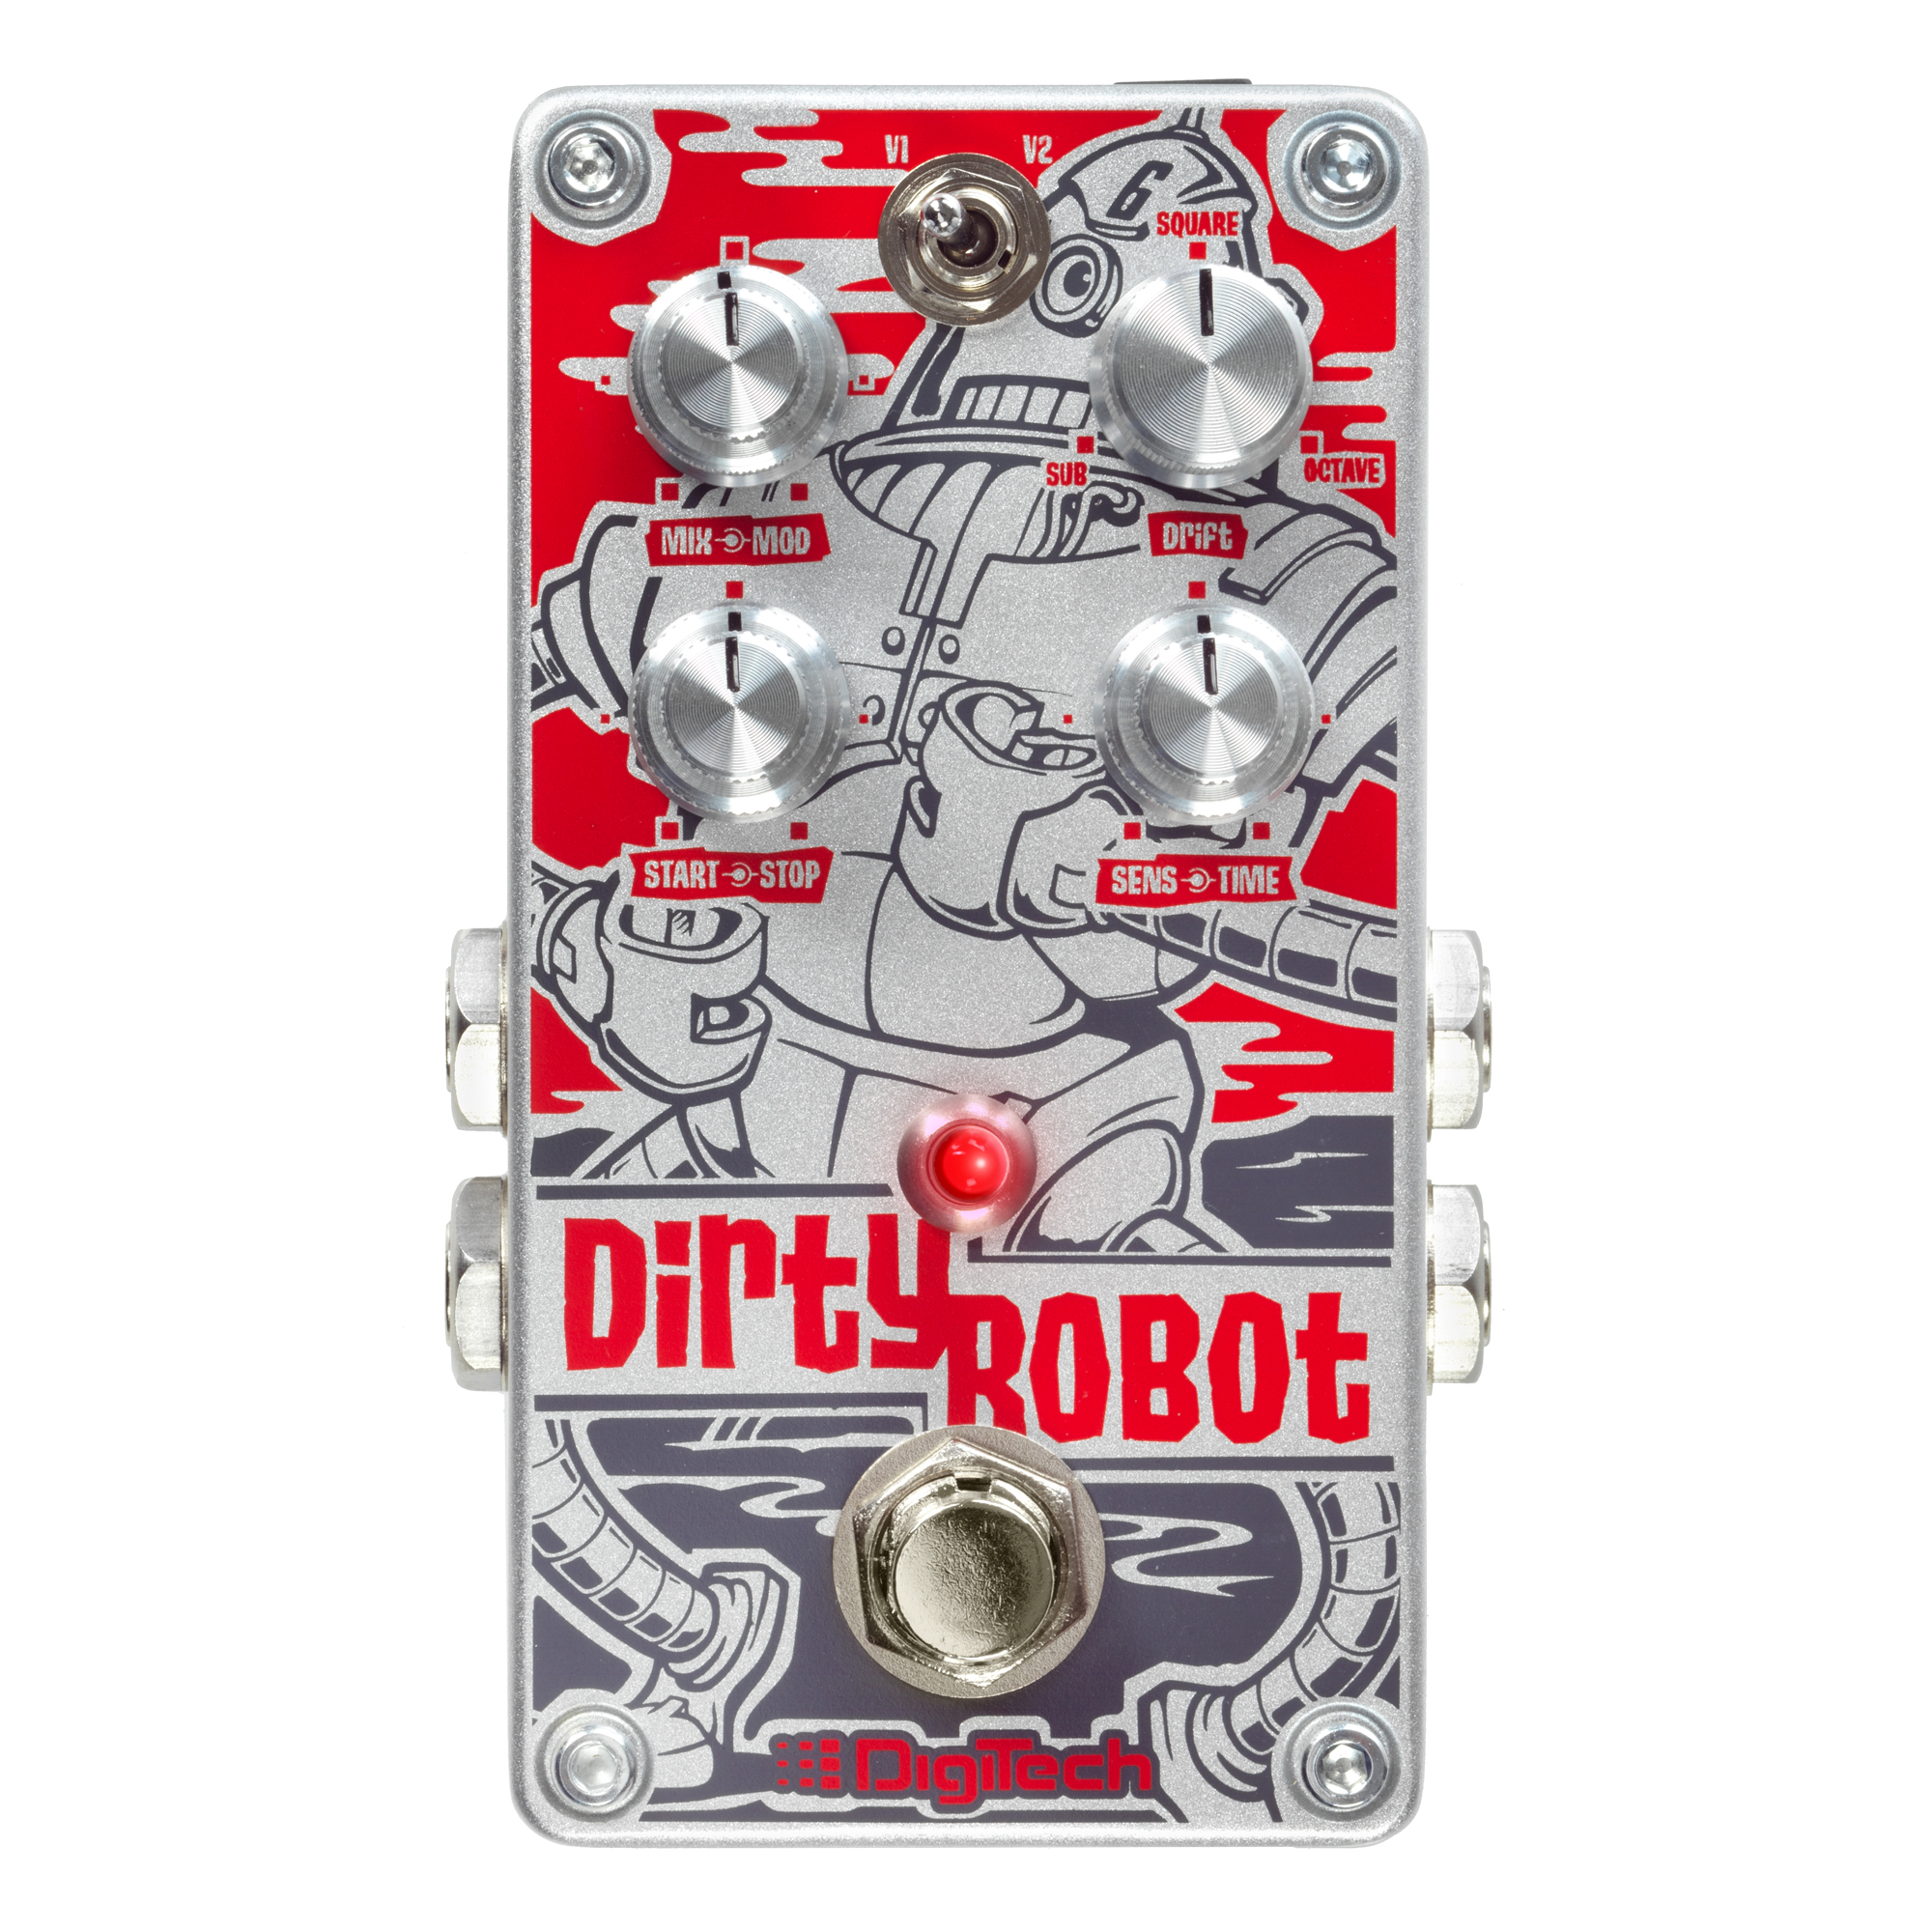 Stereo Mini-Synth Pedal